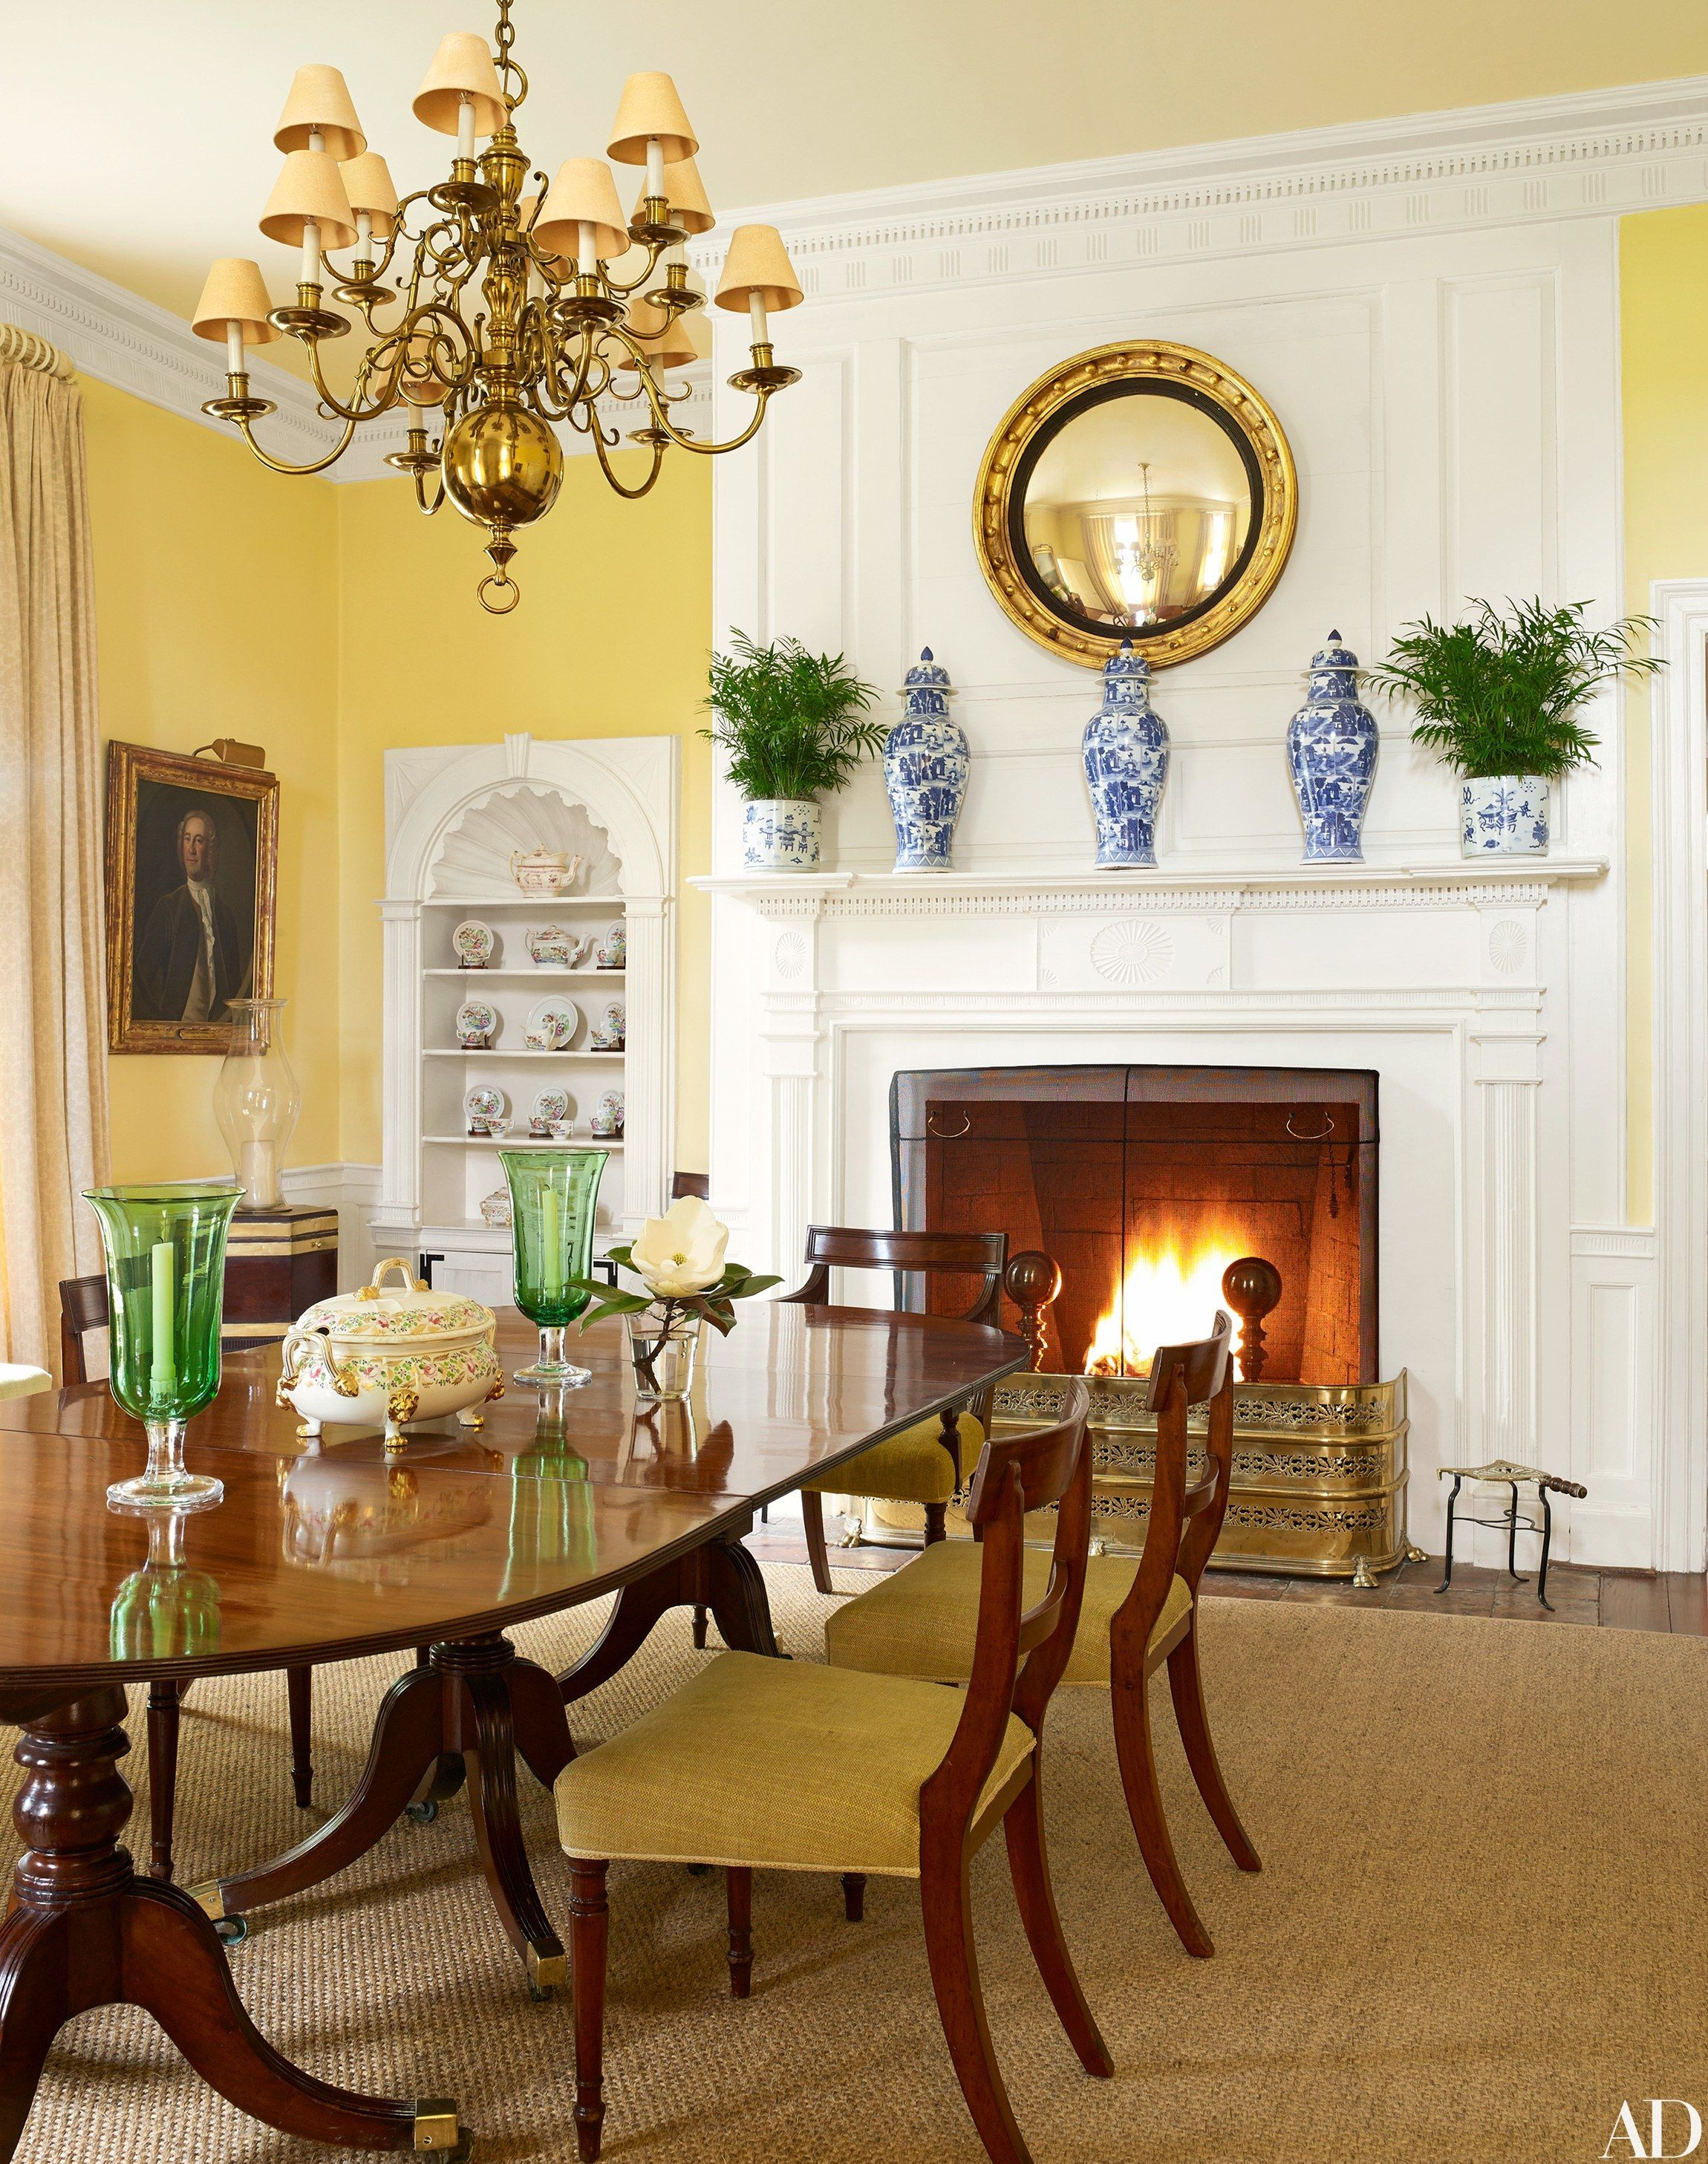 Dining Room Chandeliers Traditional A Traditional Dining Room Furnished With An Antique Chandelier And